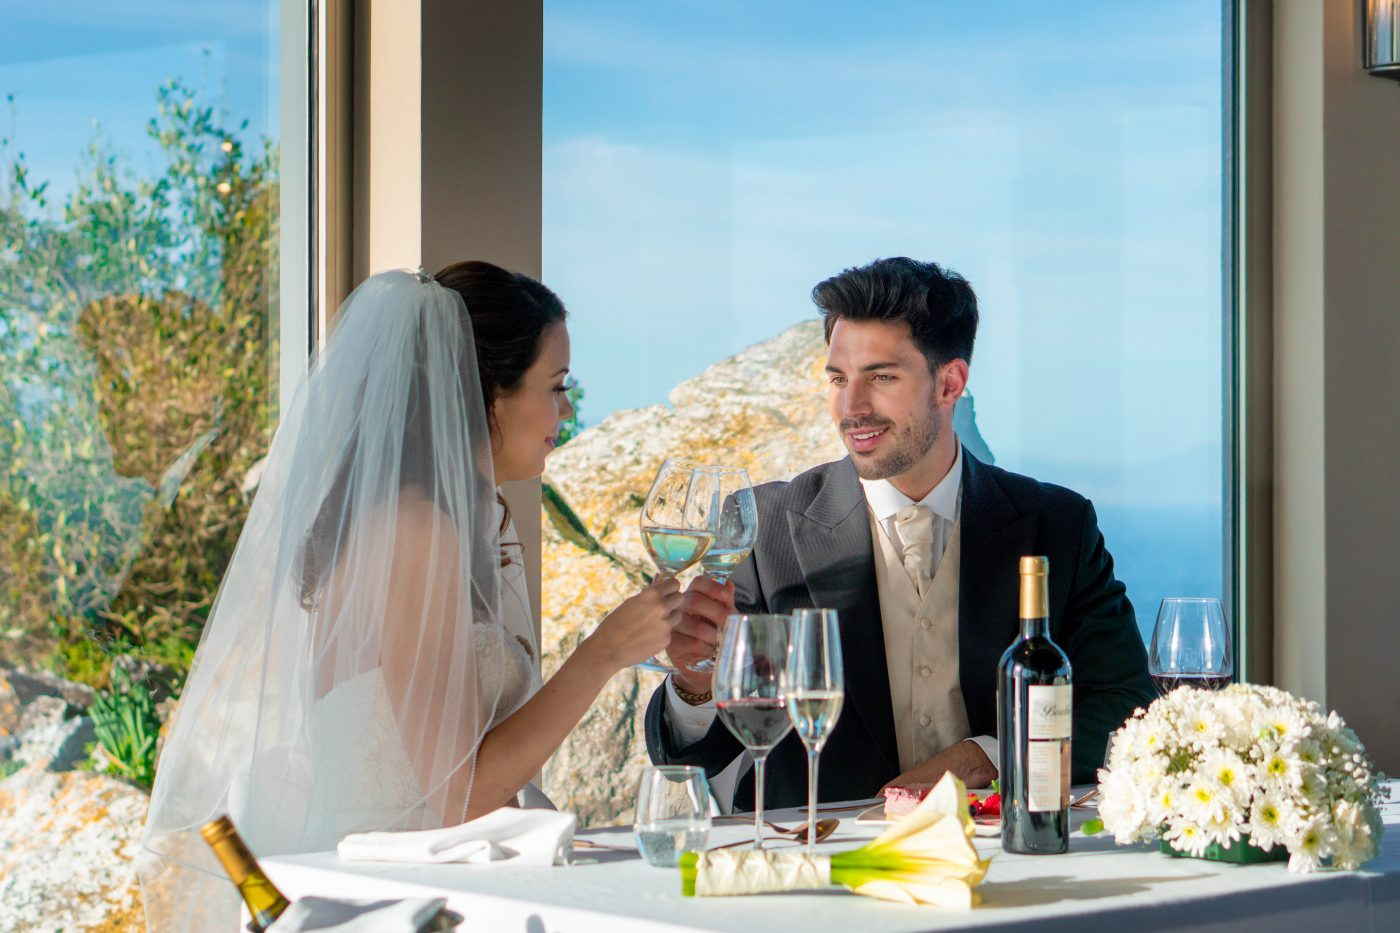 Mons Calpe Suite Wedding Venue